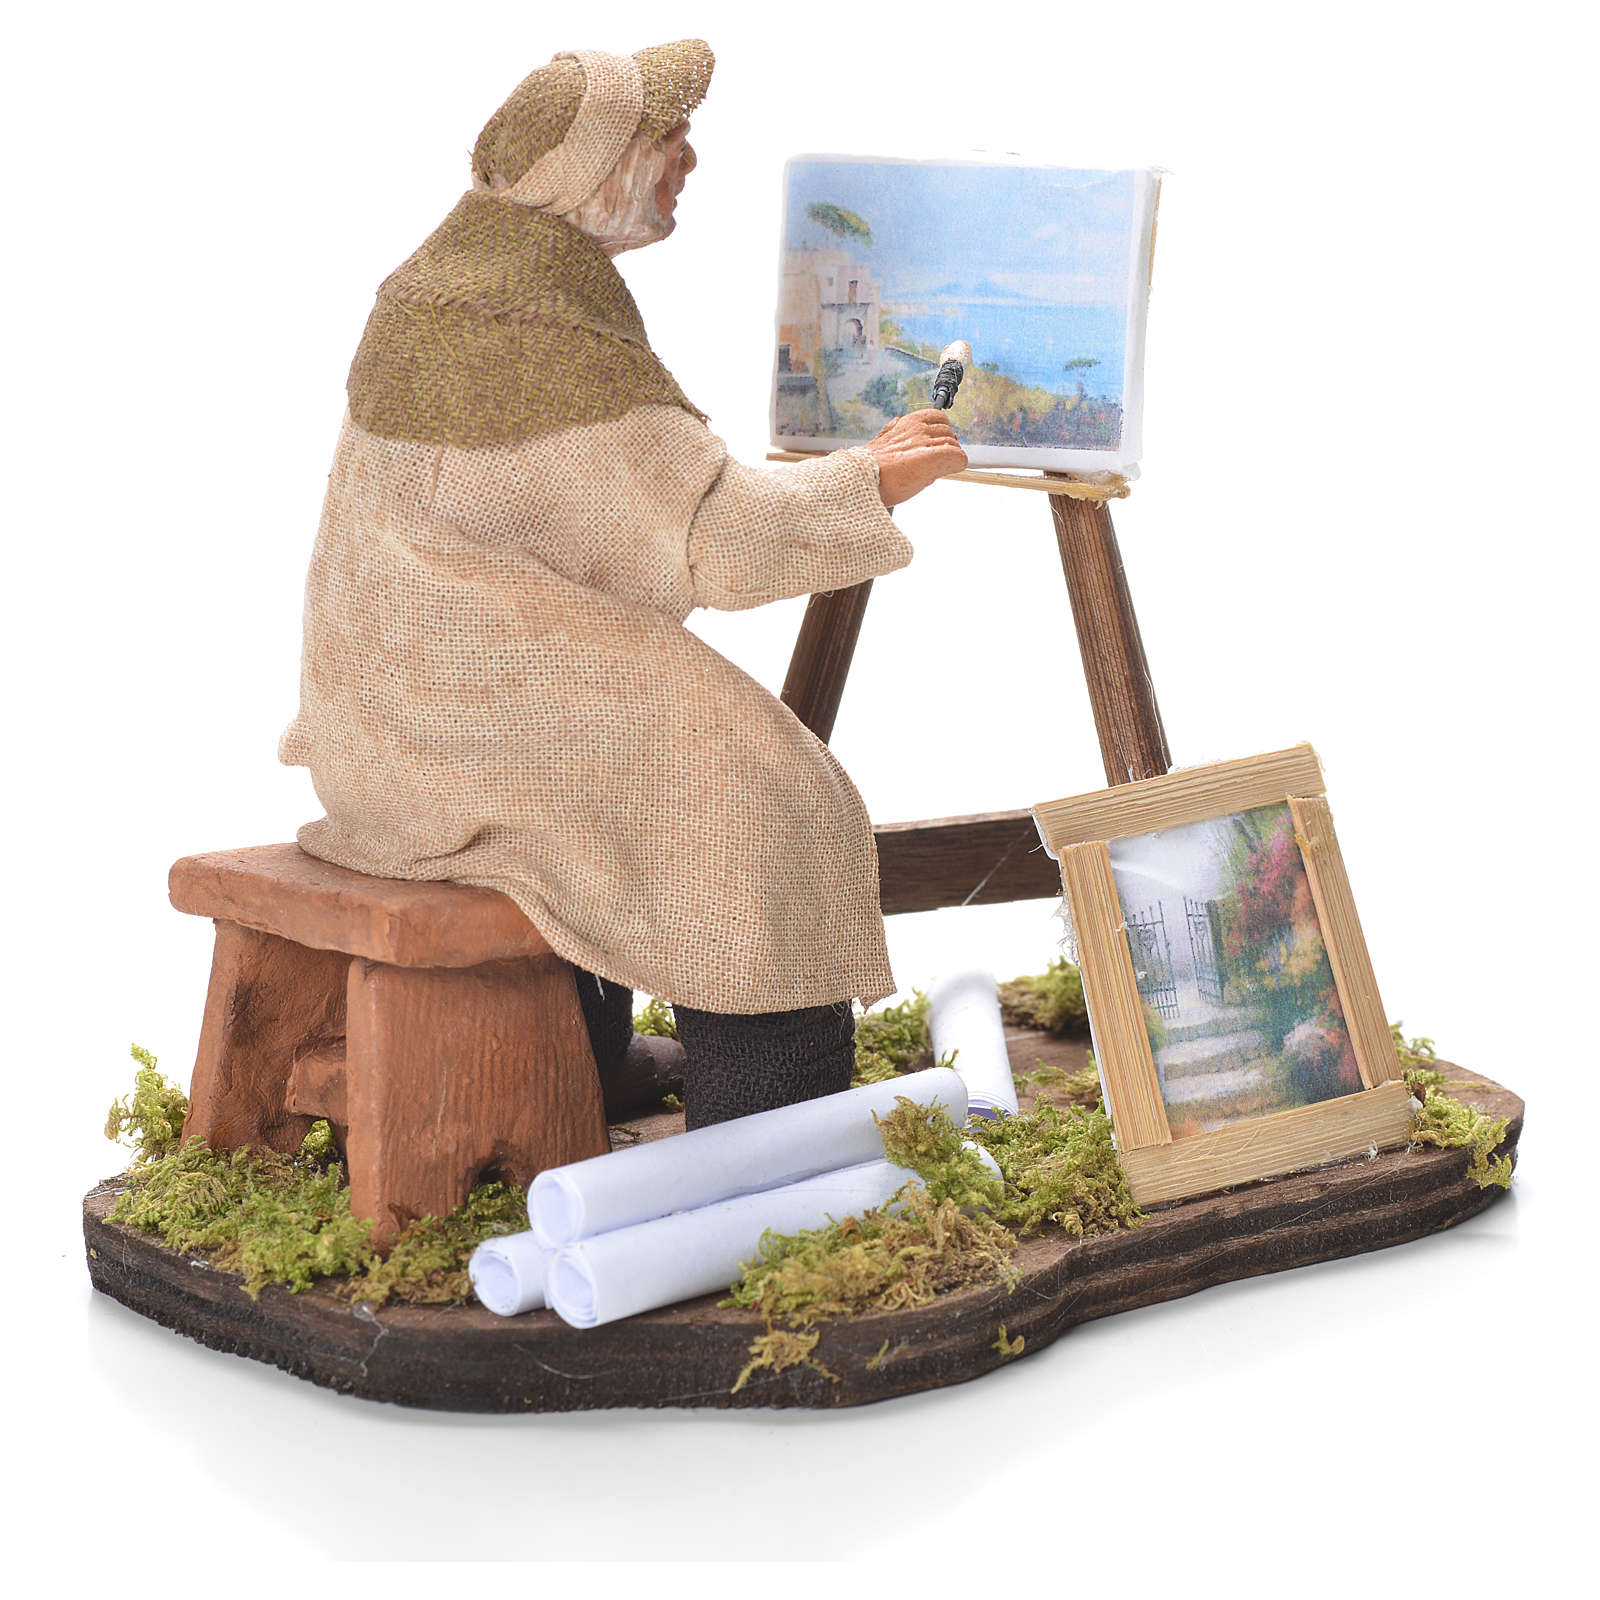 Painter with easel, Neapolitan Nativity 12cm 4